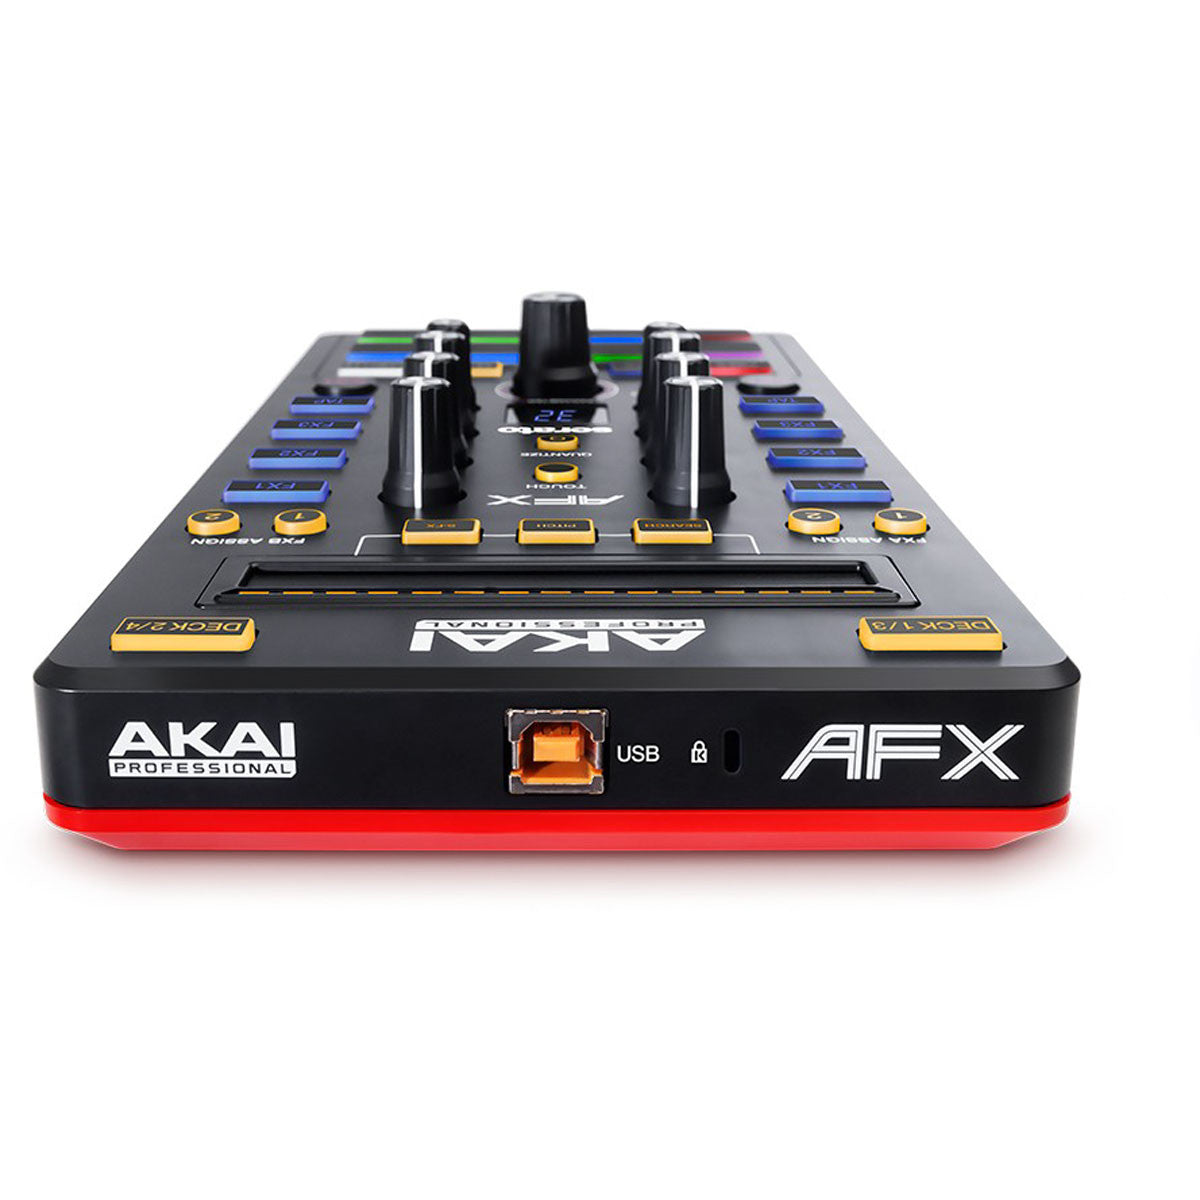 Akai: AFX USB DJ Effects Trigger Controller back